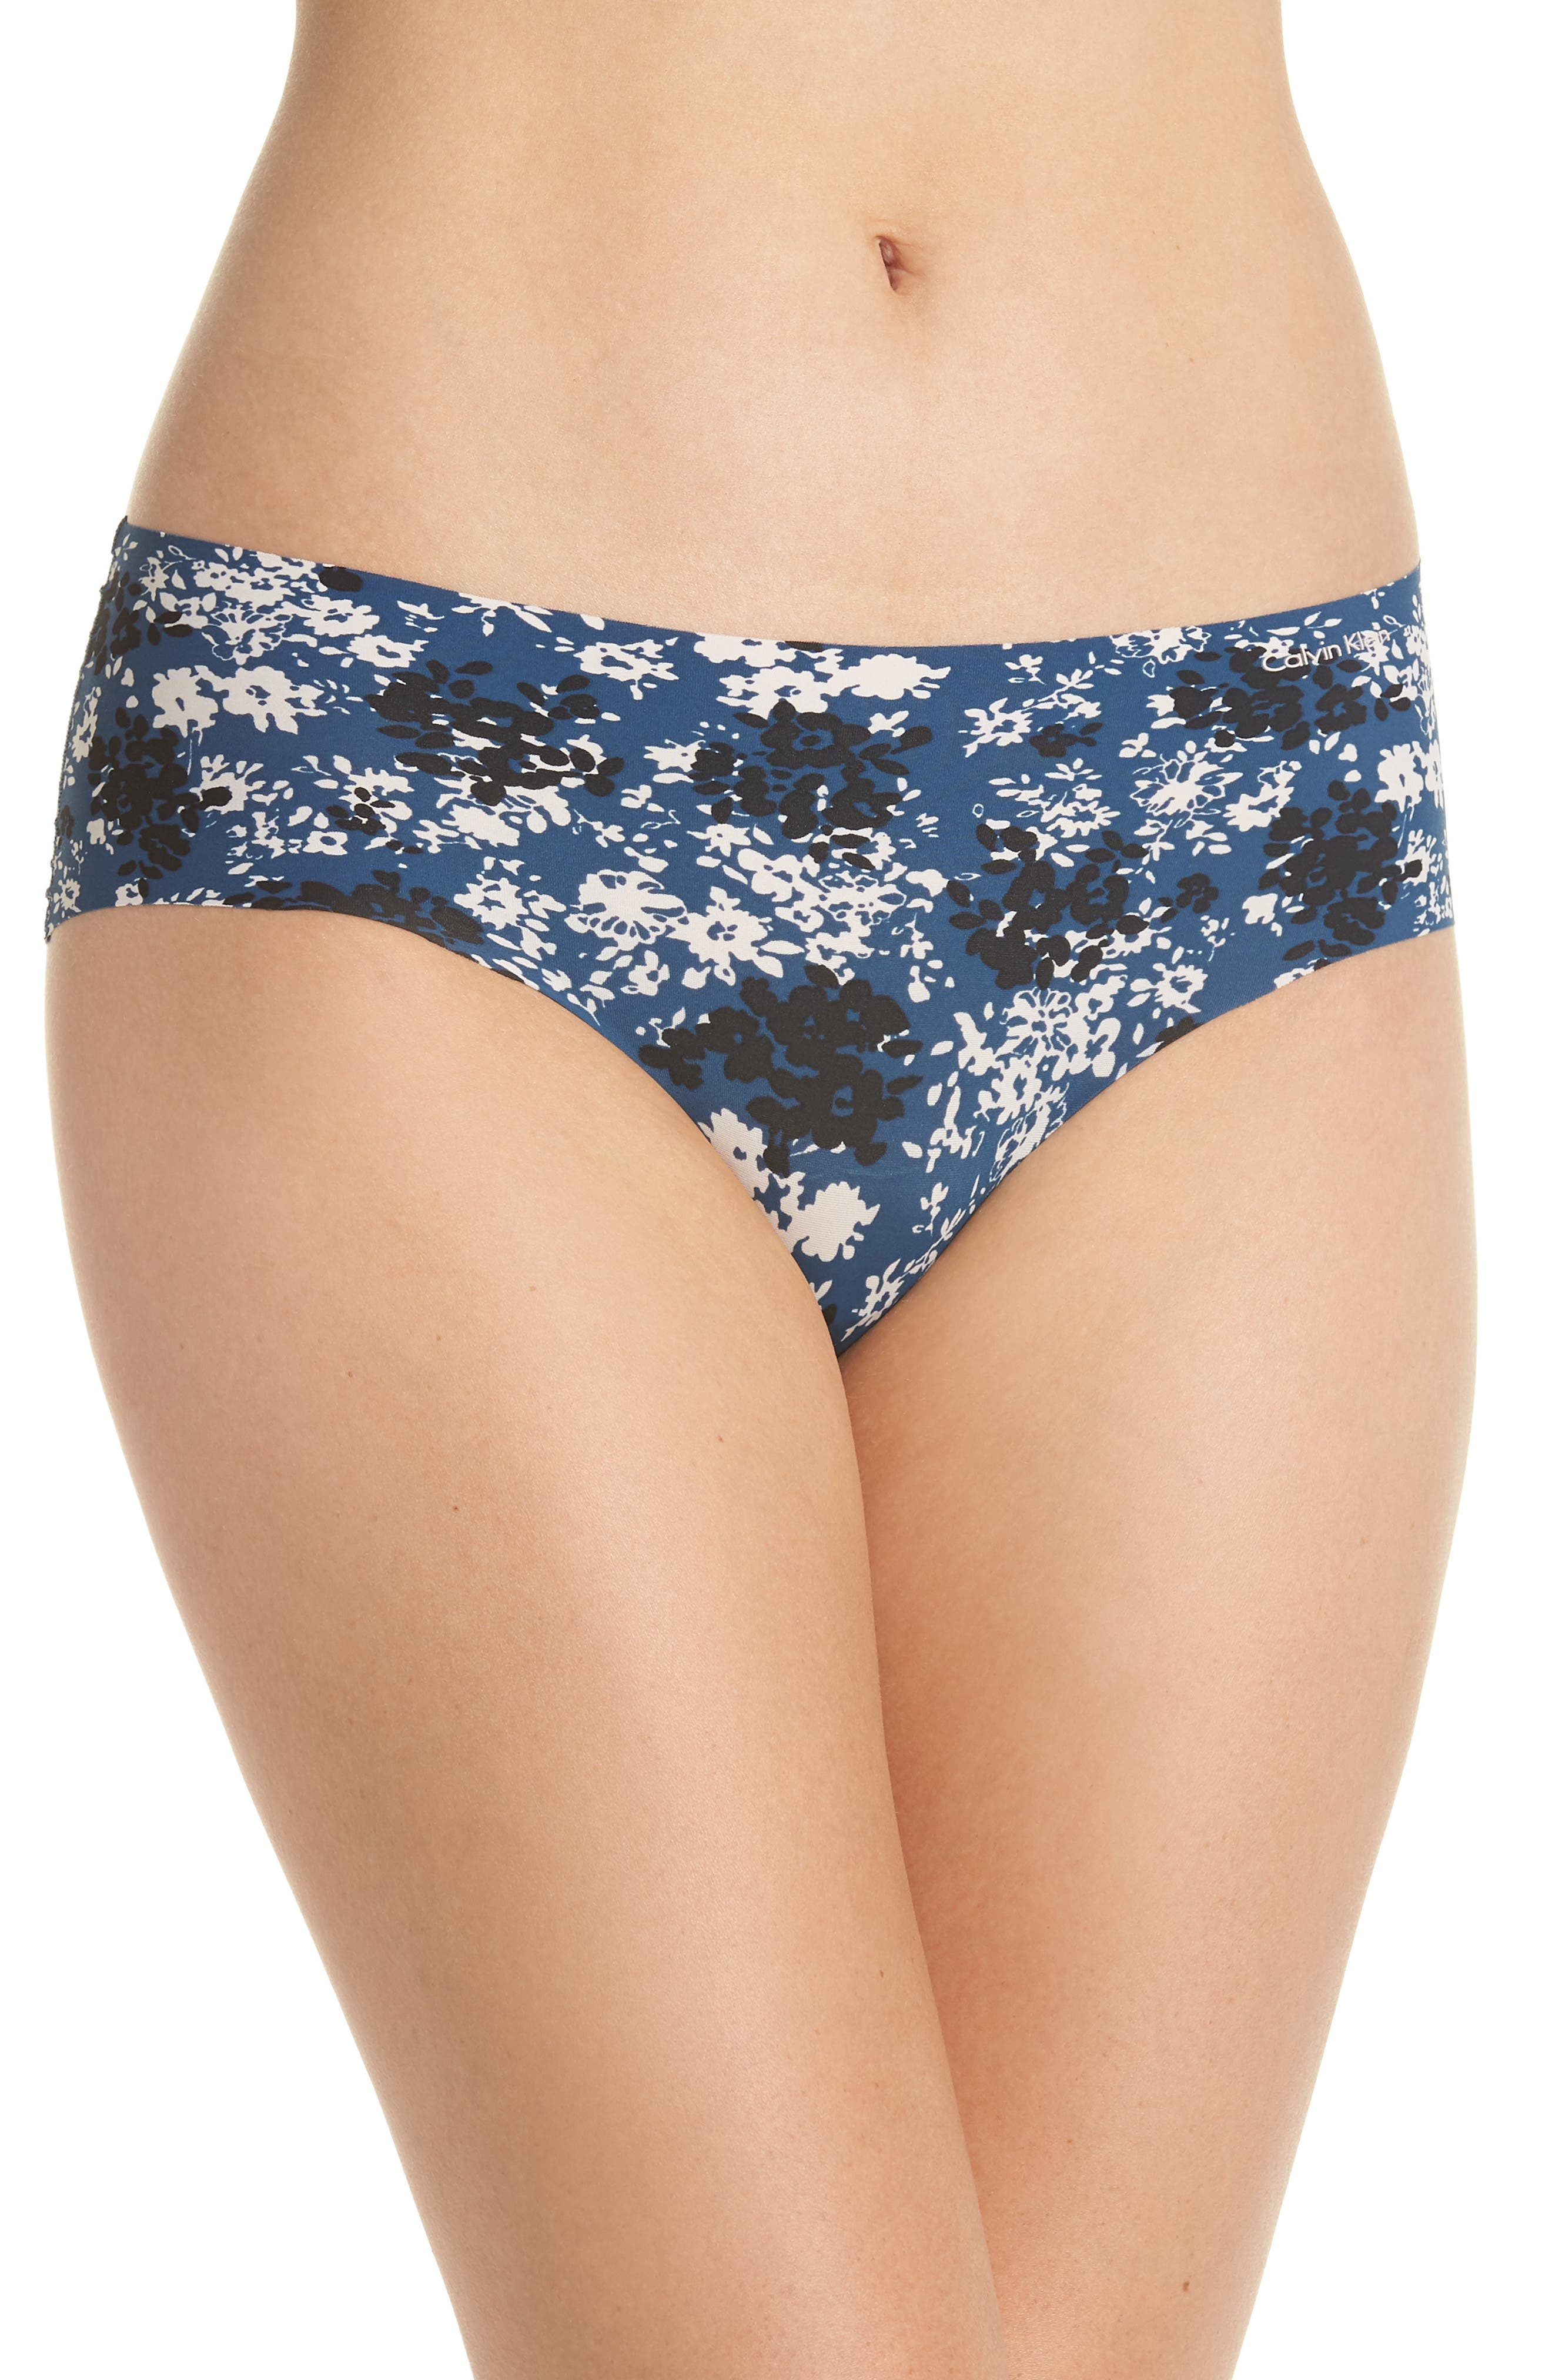 Invisibles Hipster Briefs,                         Main,                         color, SIMPLE FLORAL/ LYRIA BLUE